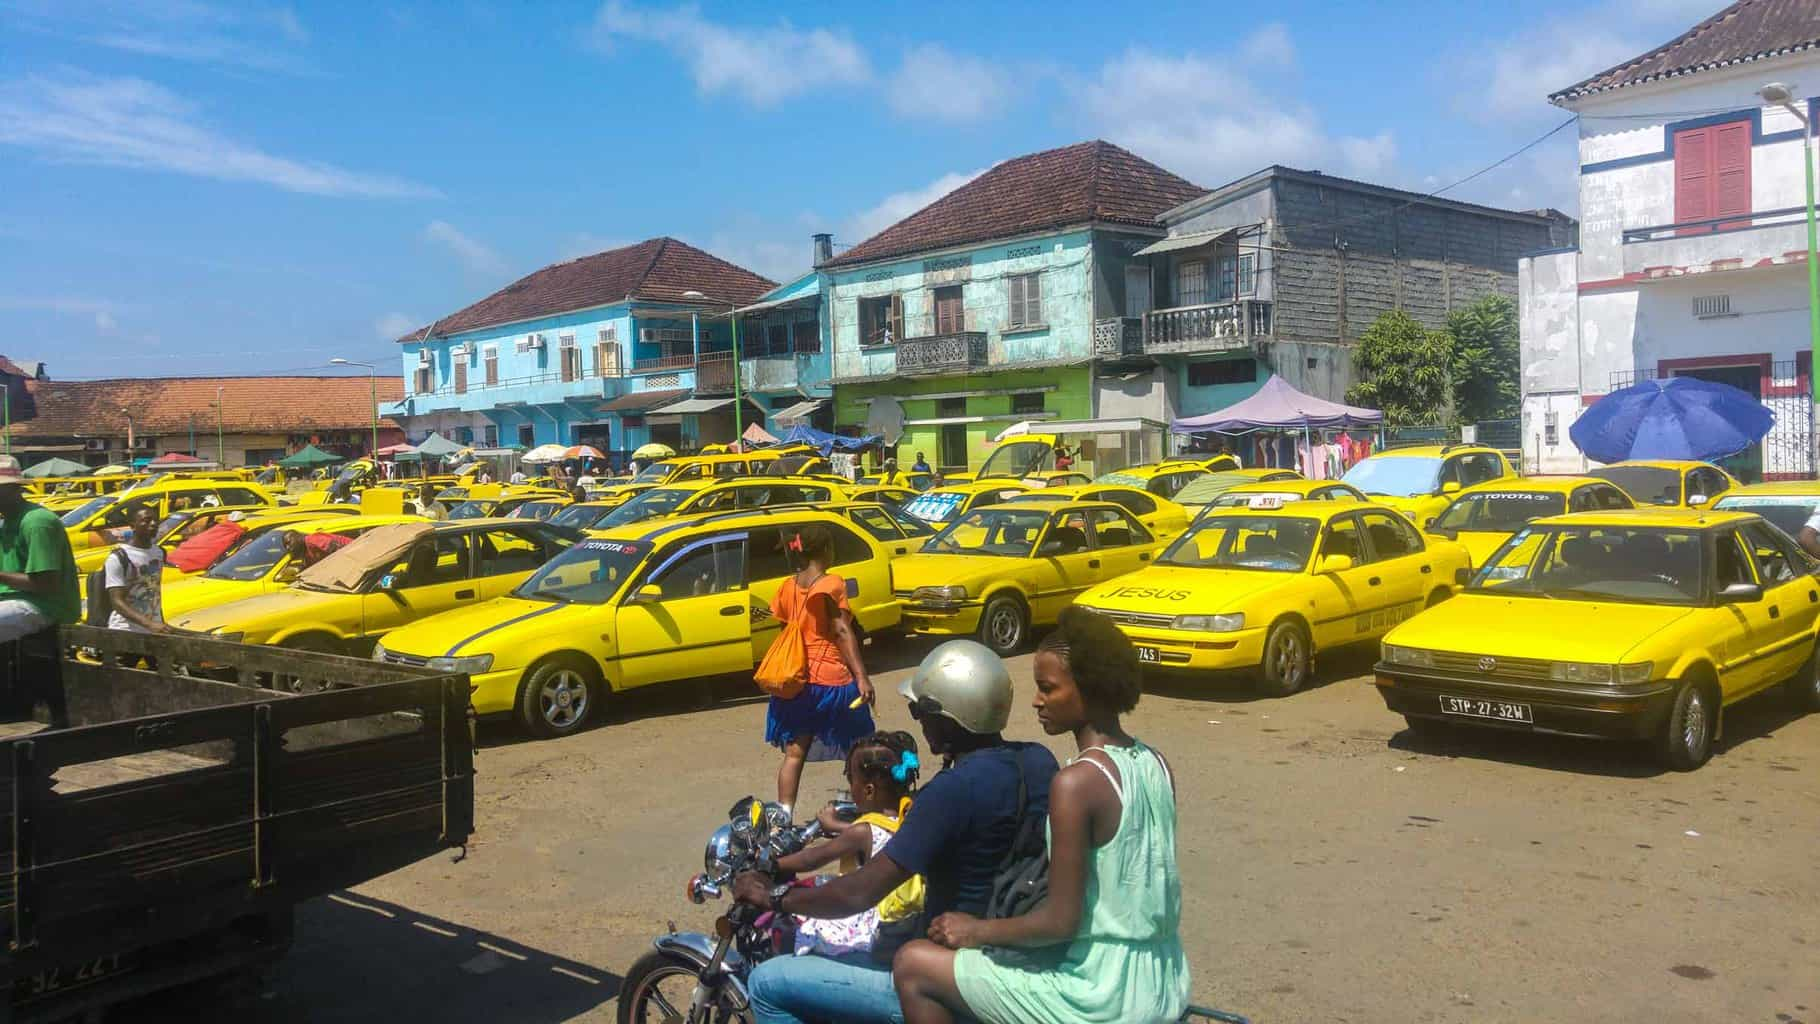 a sea of taxis in Sao Tome Travel guide